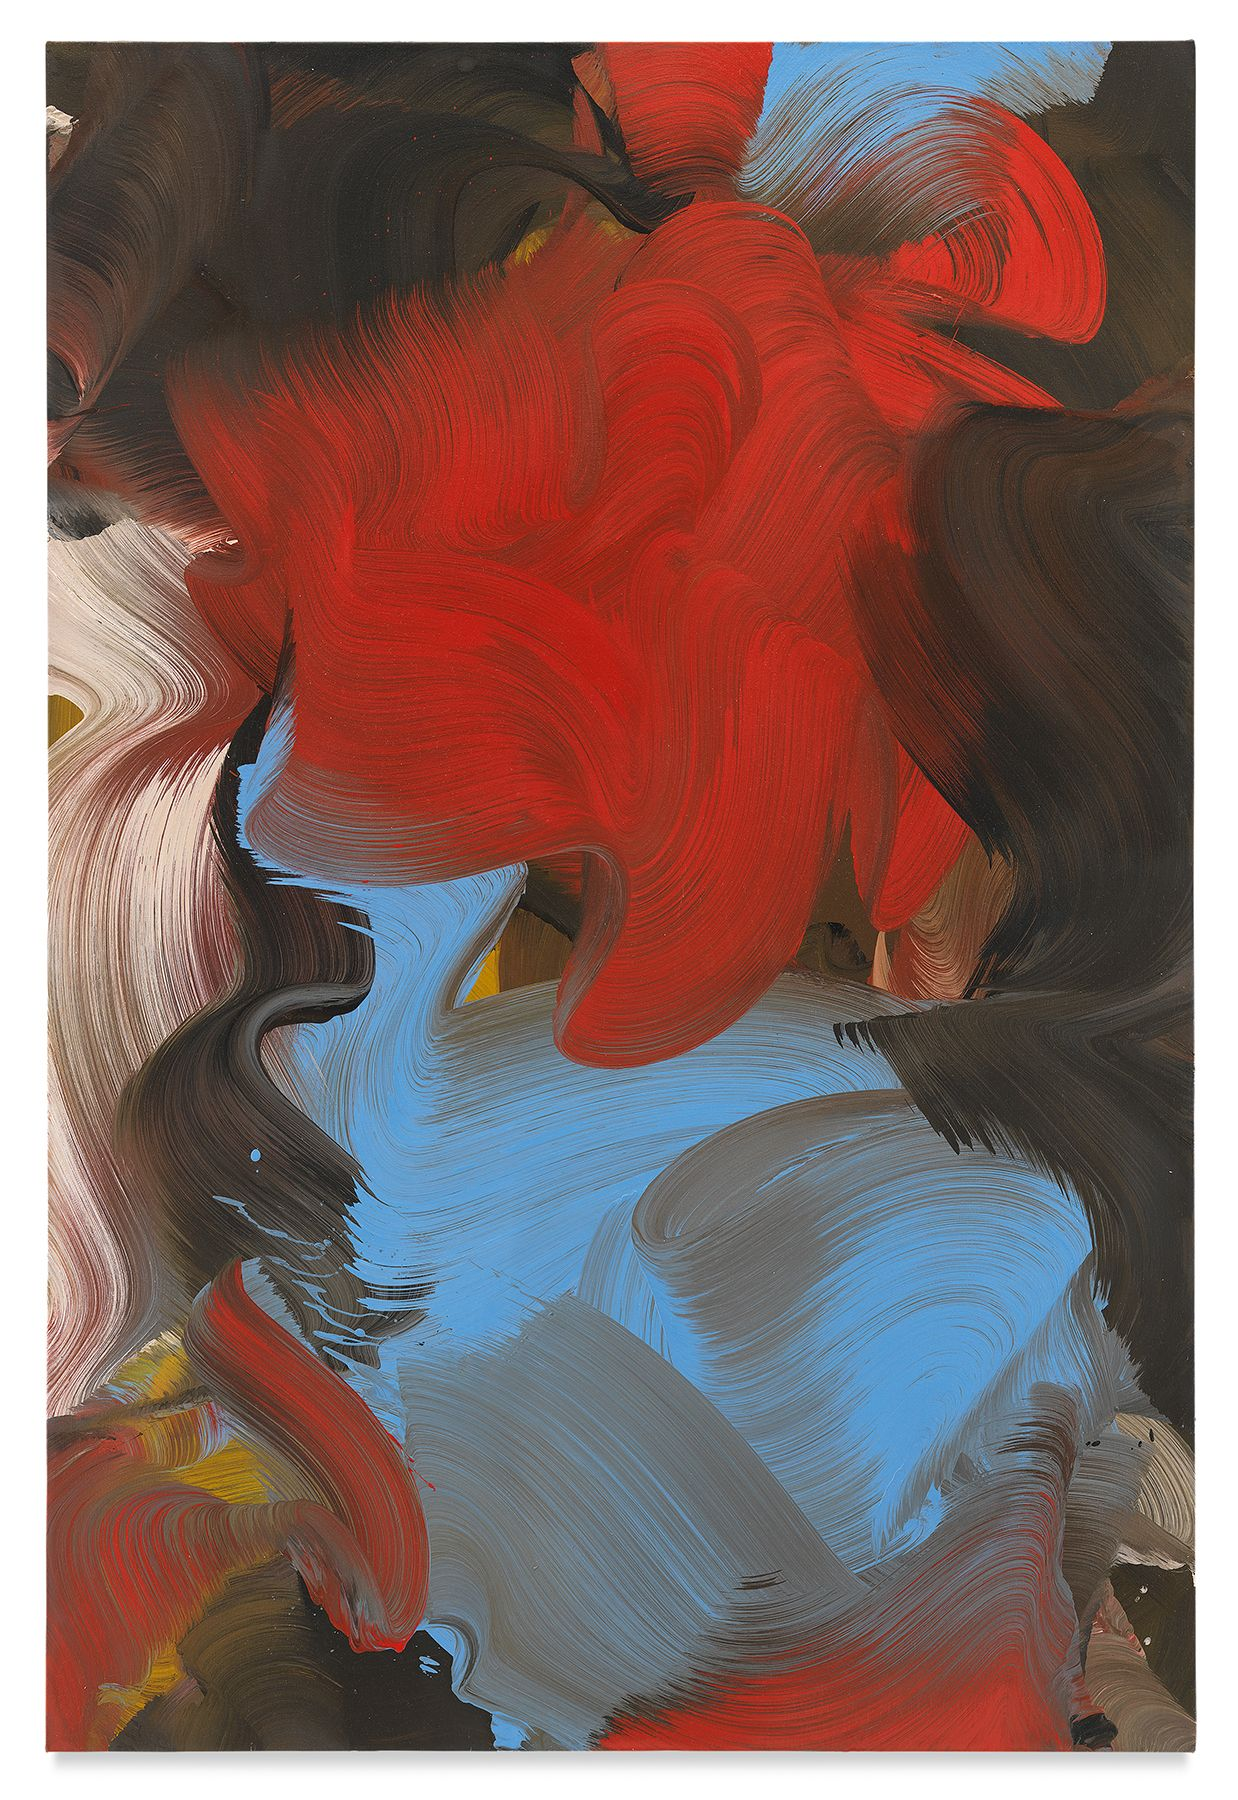 shuffle, 2018,Oil on canvas,59.5 x 39.5 inches,151.1 x 100.3 cm,MMG#30261